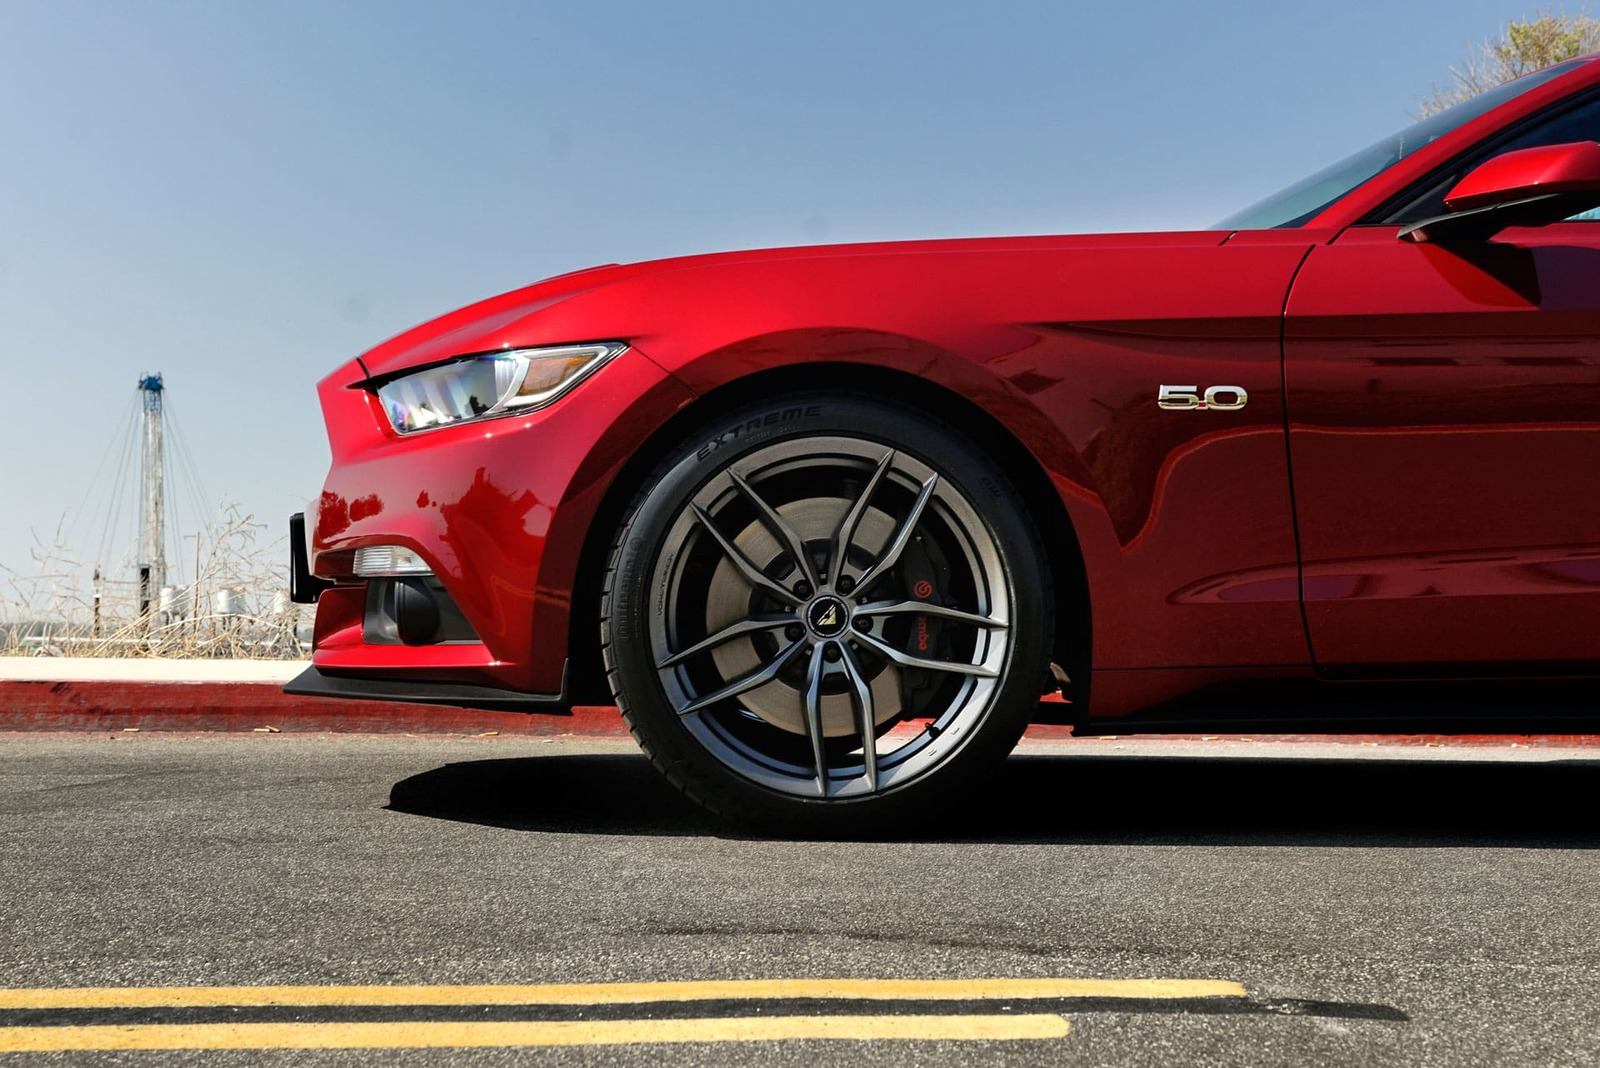 RACE-RED-FORD-MUSTANG-GTPP-S550-VORSTEINER-VFF105-CARBON-GRAPHITE-CONCAVE-MUSTANG-WHEELS-3.jpg